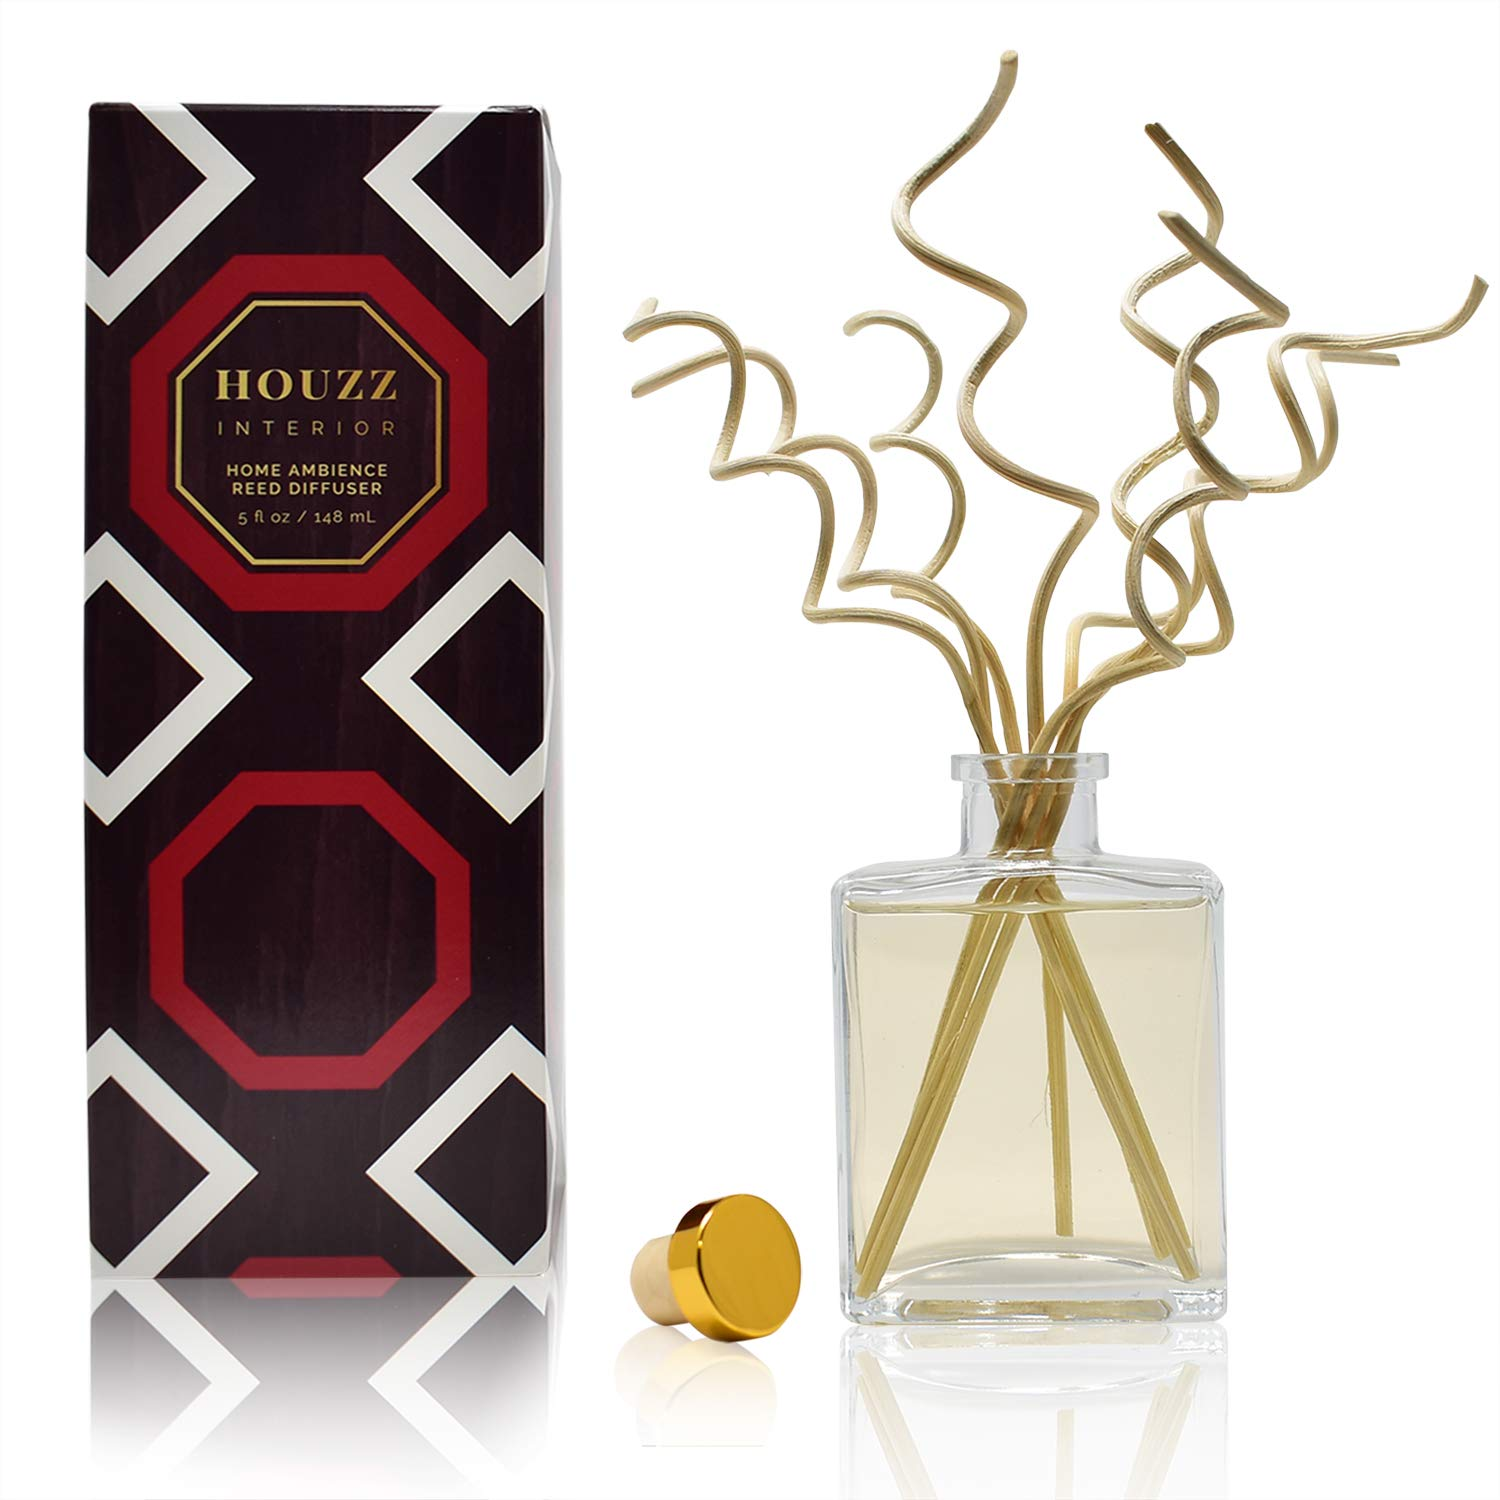 HOUZZ Interior Diffuser Sticks Pumpkin Pie Reed Diffuser Oil with Decorative Curly Reed Sticks - Sweet Pumpkin, Nutmeg, Molasses and Cinnamon - Great Fall and Autumn Bakery Scent - Made in the USA by HOUZZ Interior